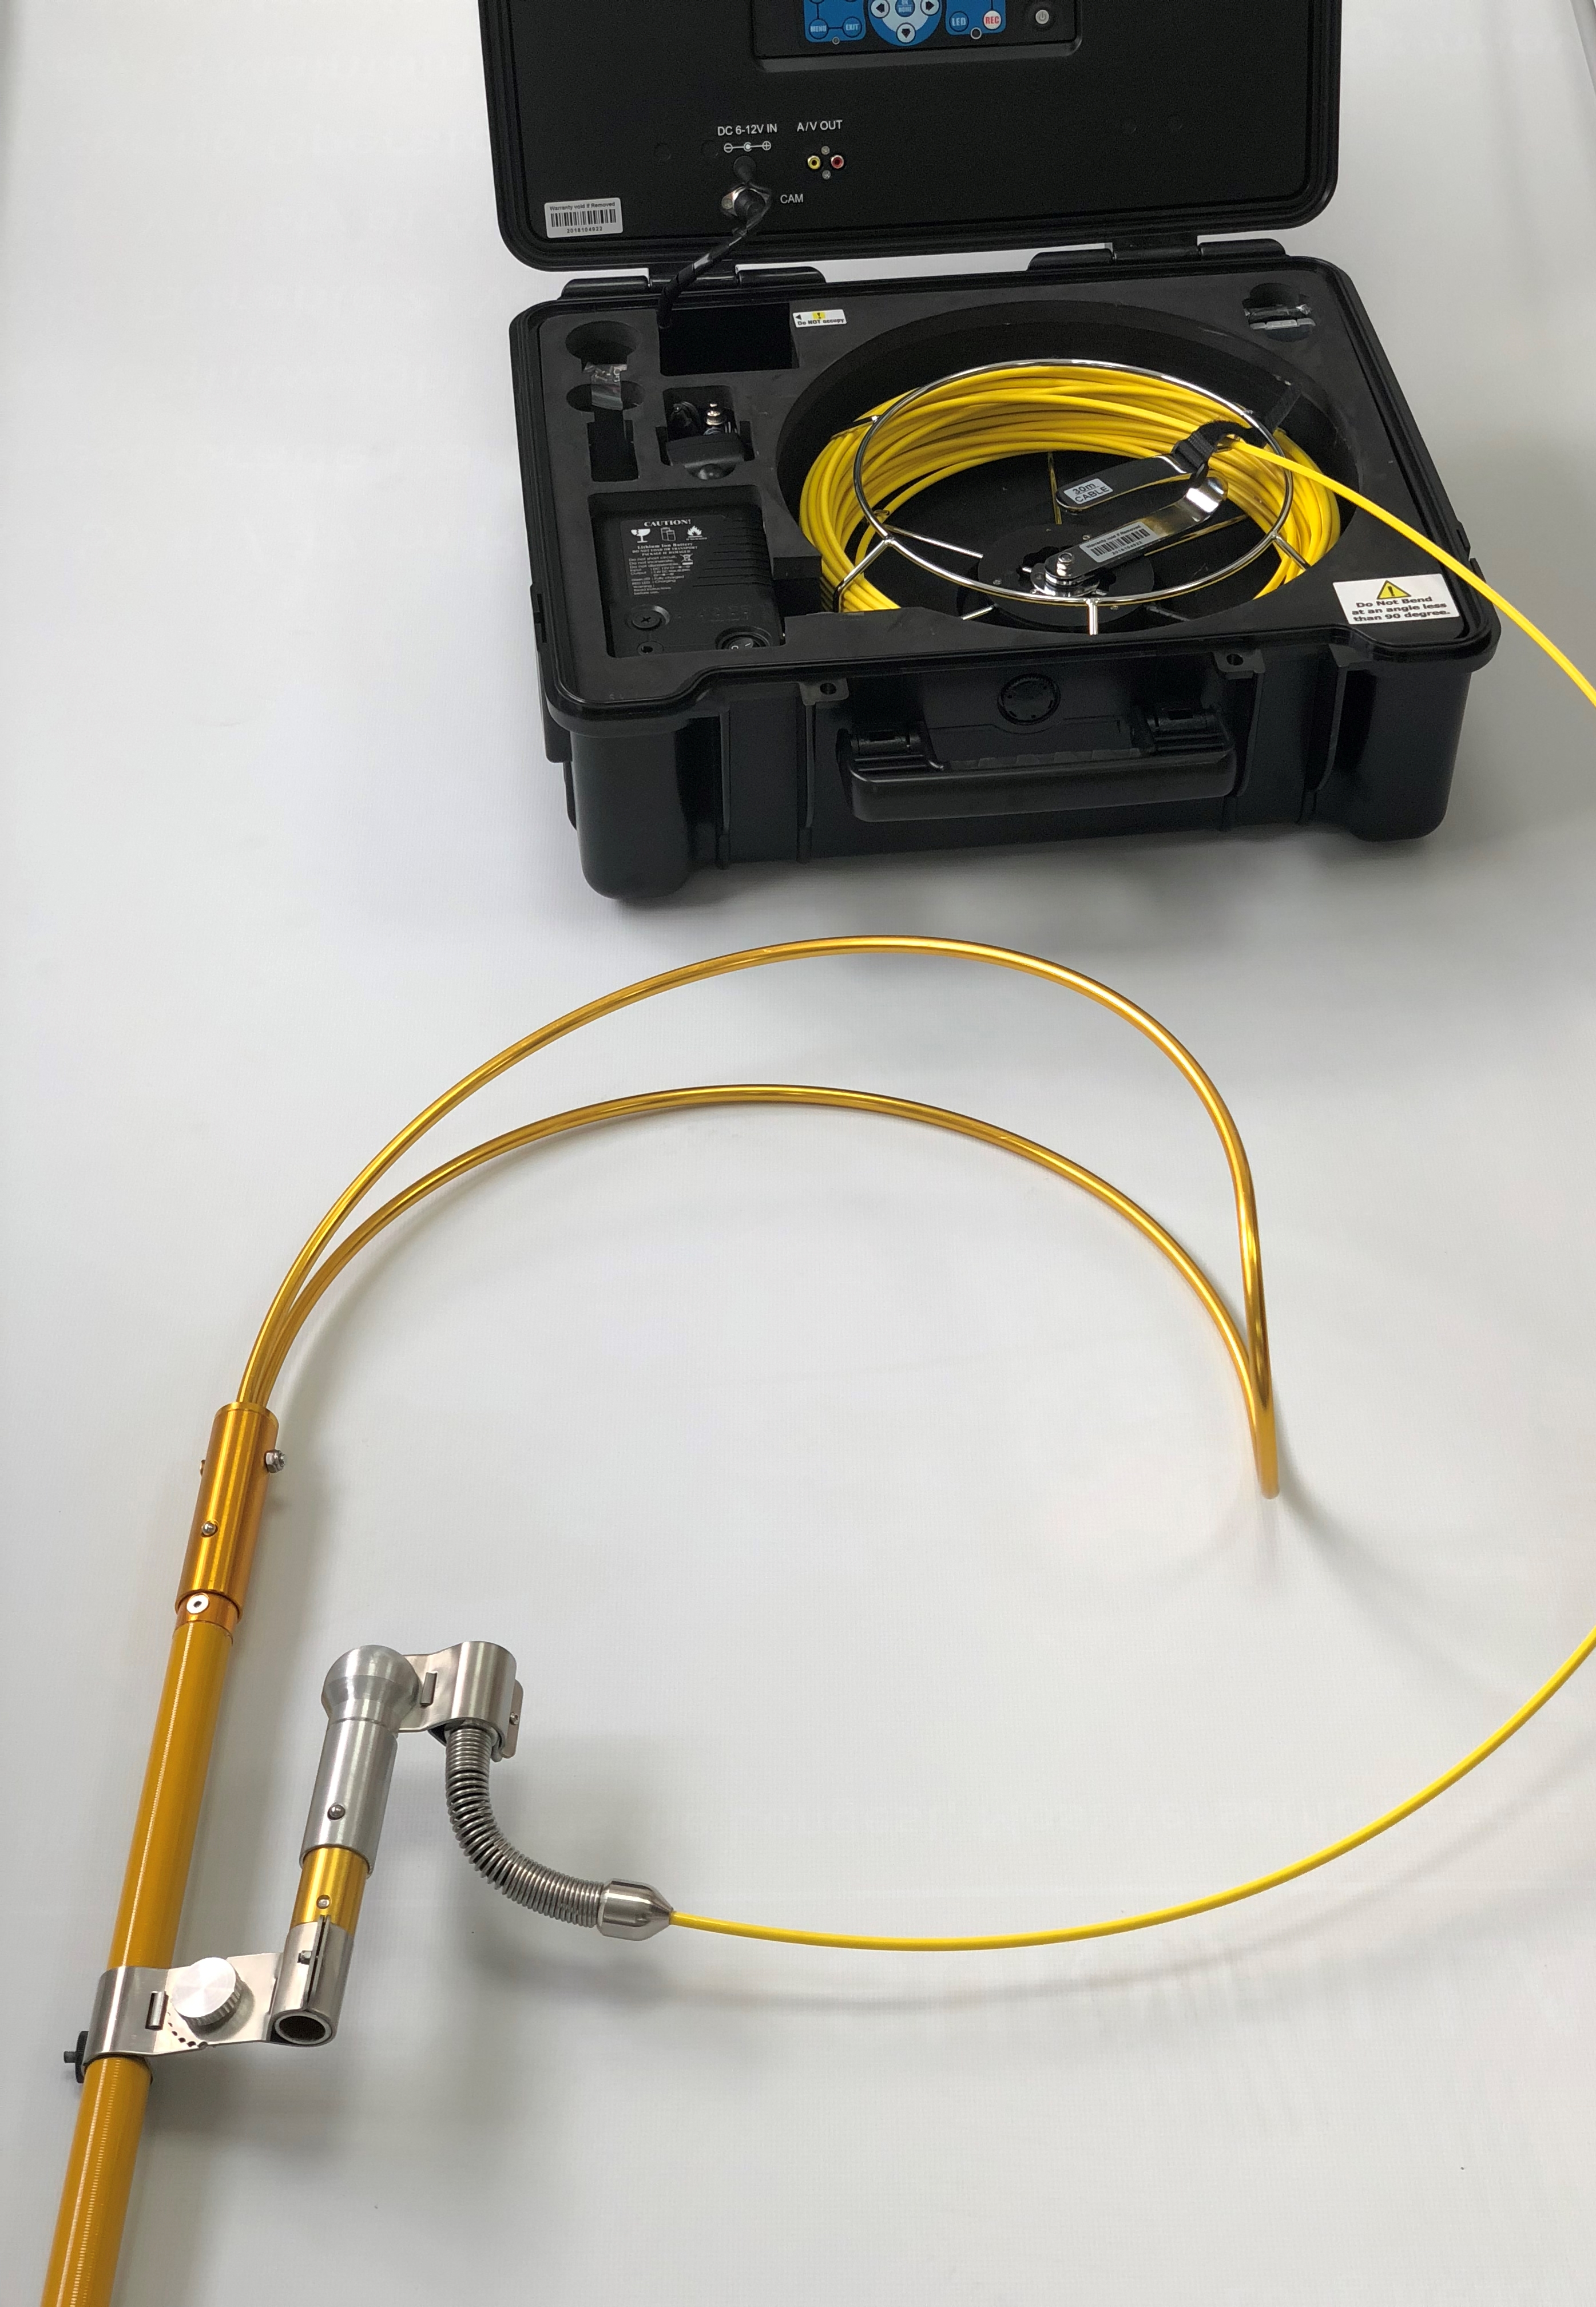 An image displaying the Reach and Rescue Body Finder and Recovery Aid with the Inspection Camera and Body Hook